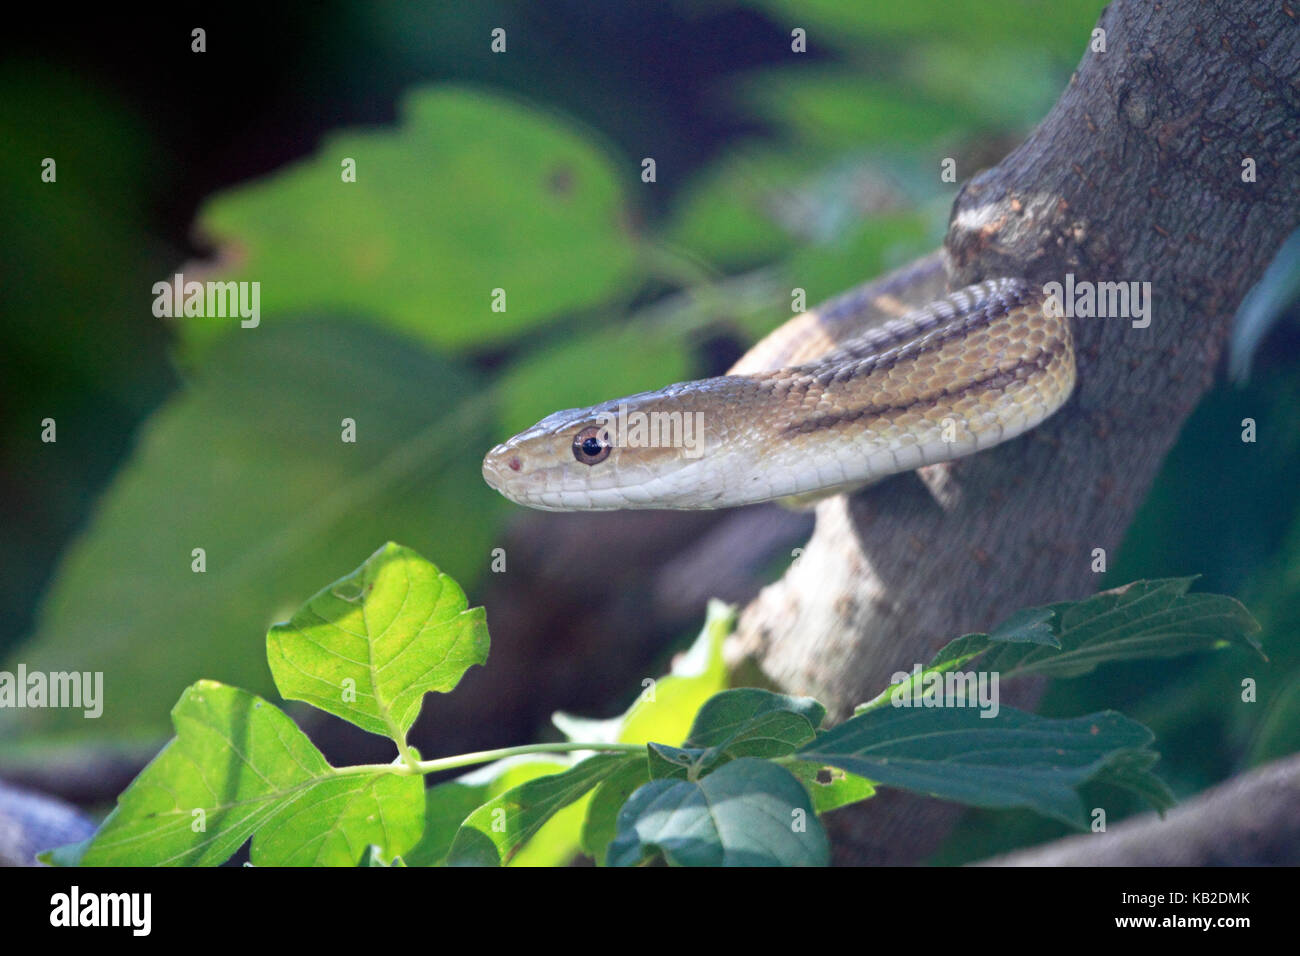 A snake in a tree. an allegorical of Adam and Eve - Stock Image